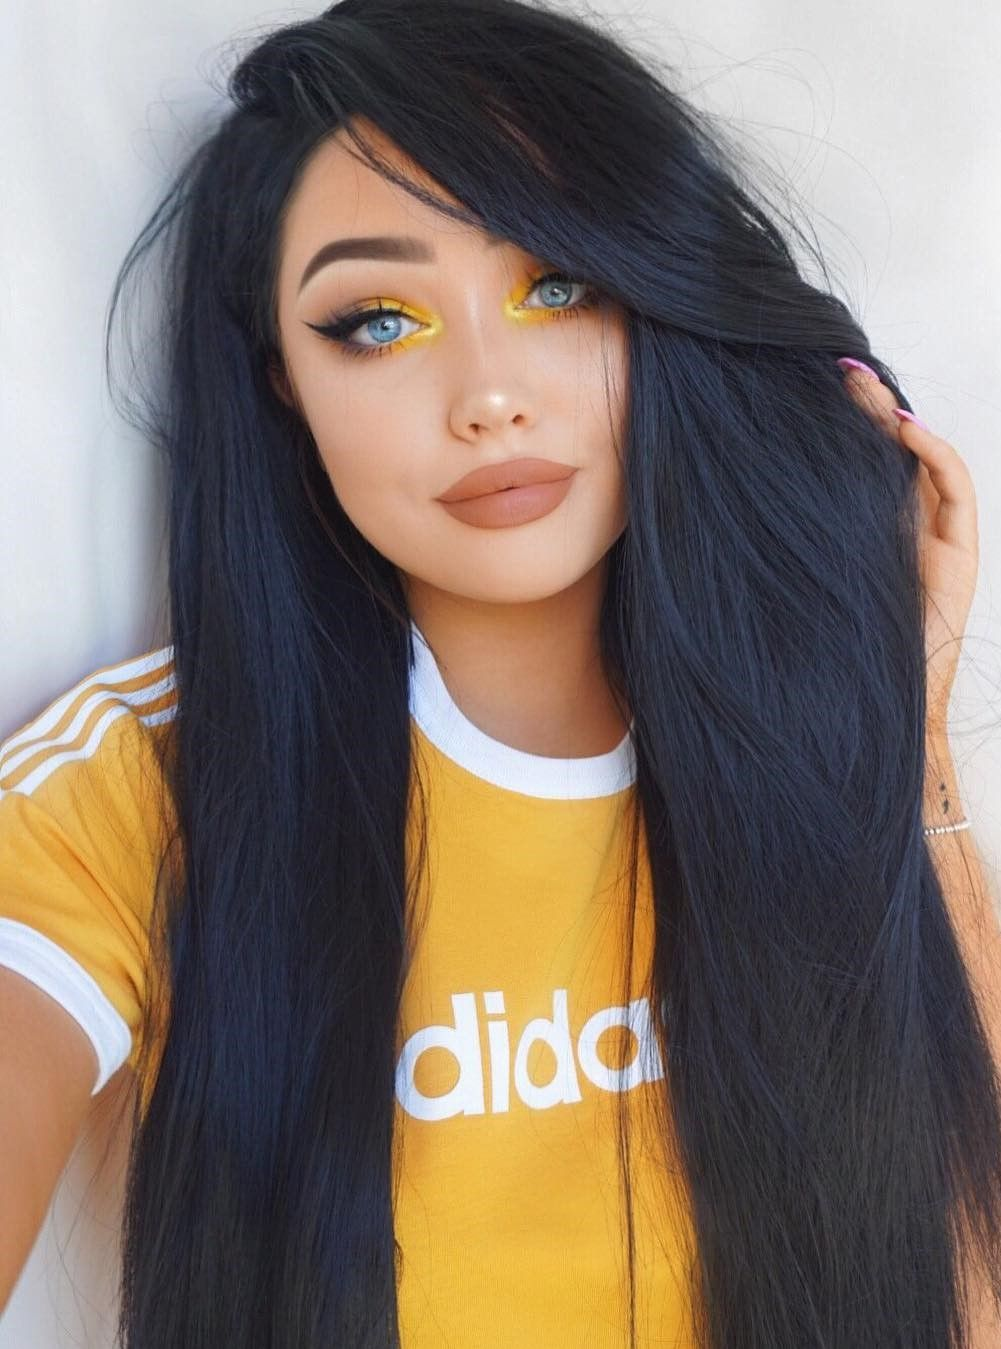 46 Amazing Makeup Looks To Try With Images Yellow Makeup